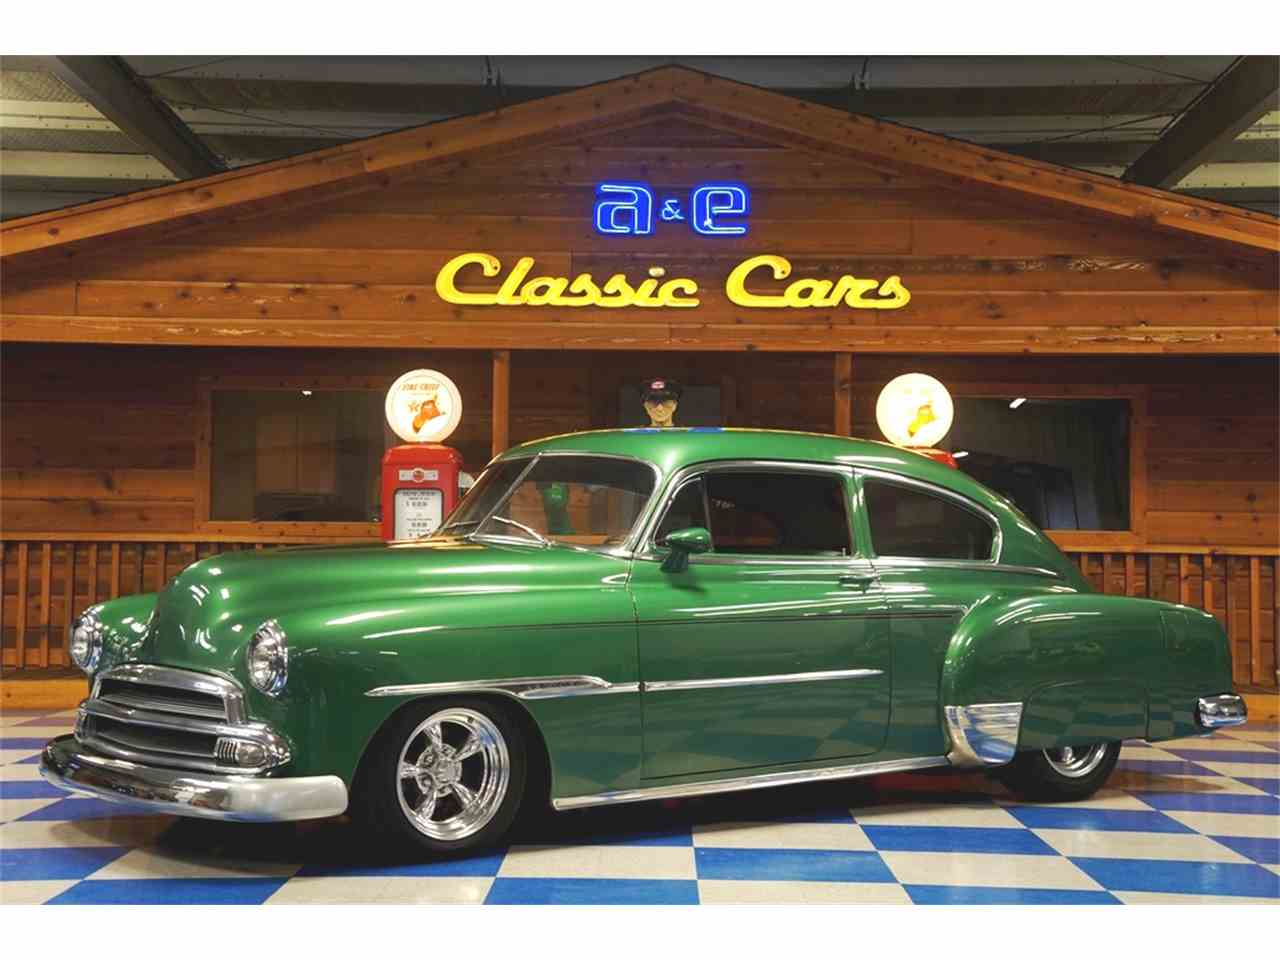 All Chevy 1951 chevy deluxe for sale : 1951 Chevrolet Deluxe for Sale | ClassicCars.com | CC-920691